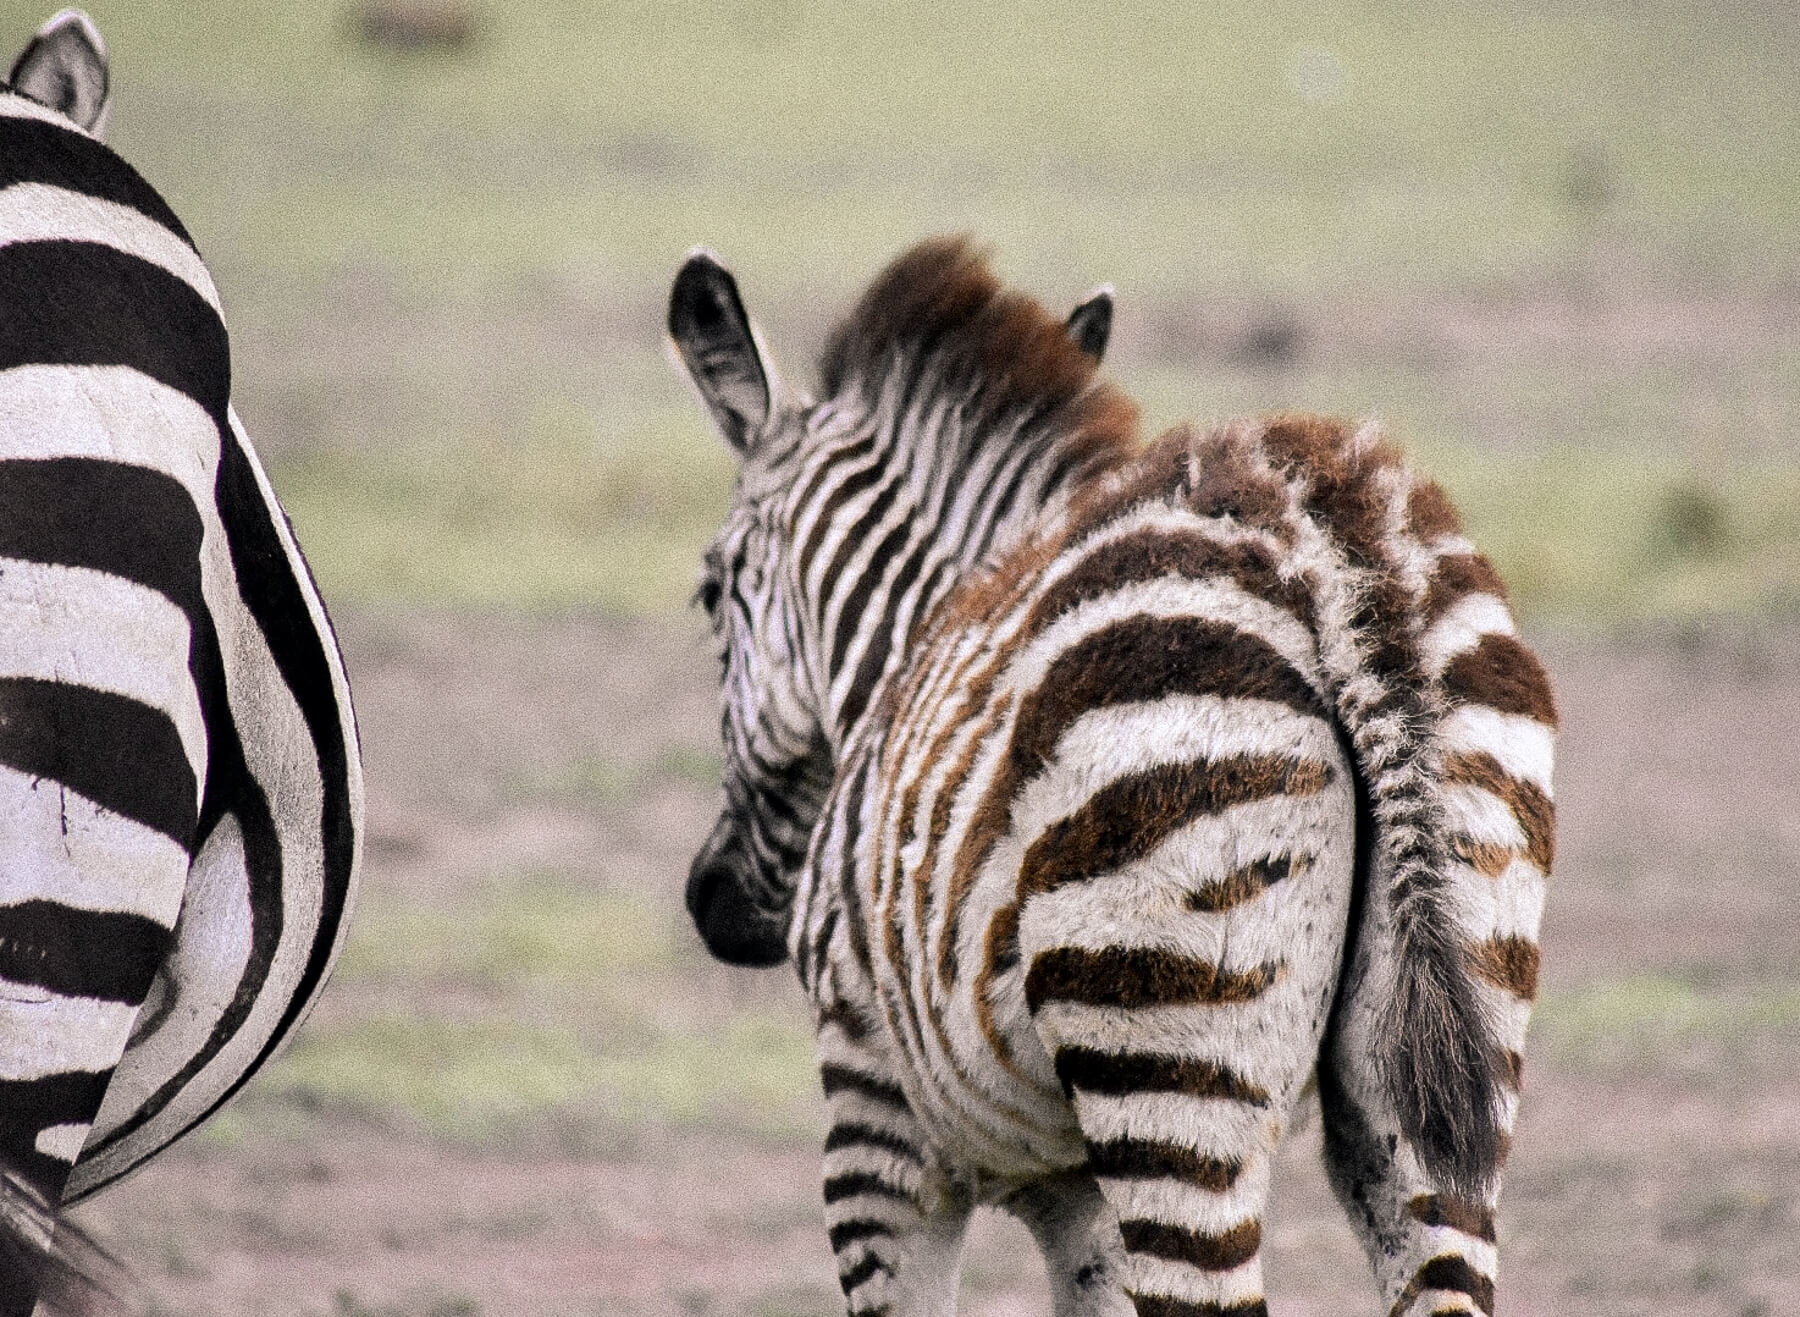 A fluffy baby zebra walking away from the camera in the Maasai Mara